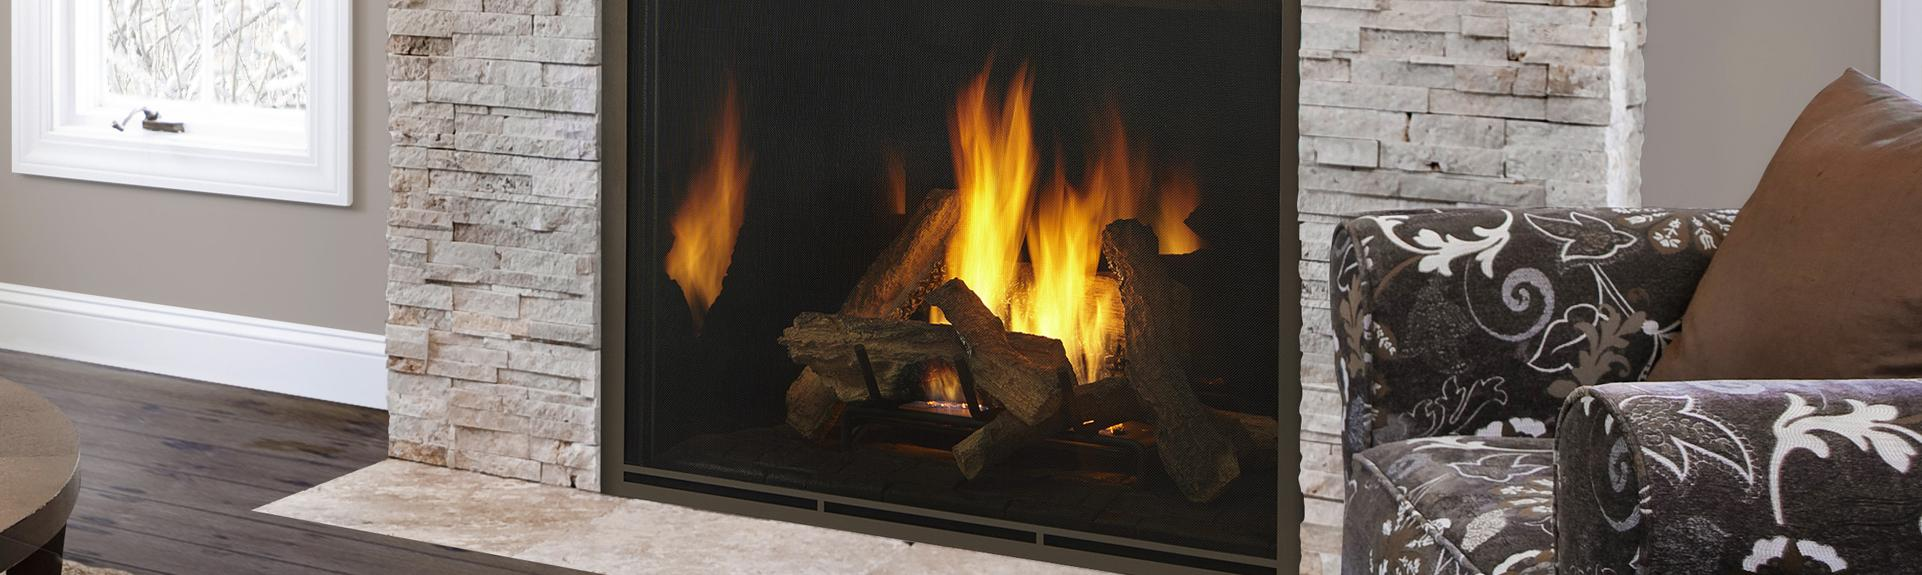 professional pellet stove maintenance Monmouth County nj